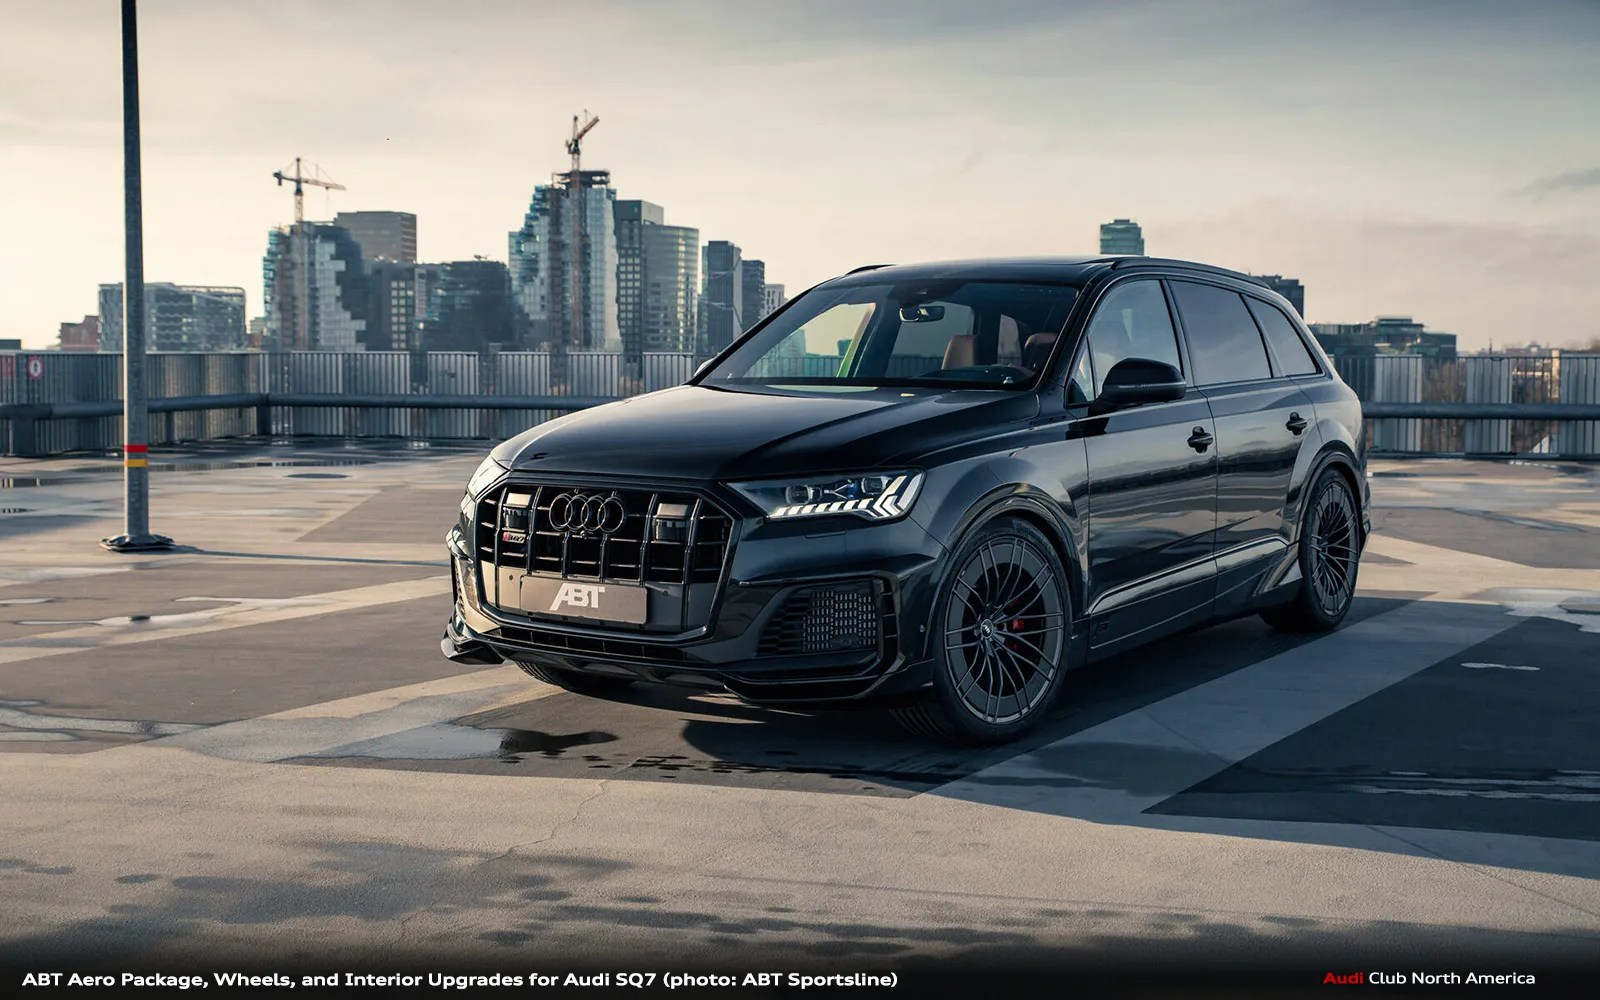 ABT Sportsline Aero Package, Wheels, and Interior Upgrades for Audi SQ7